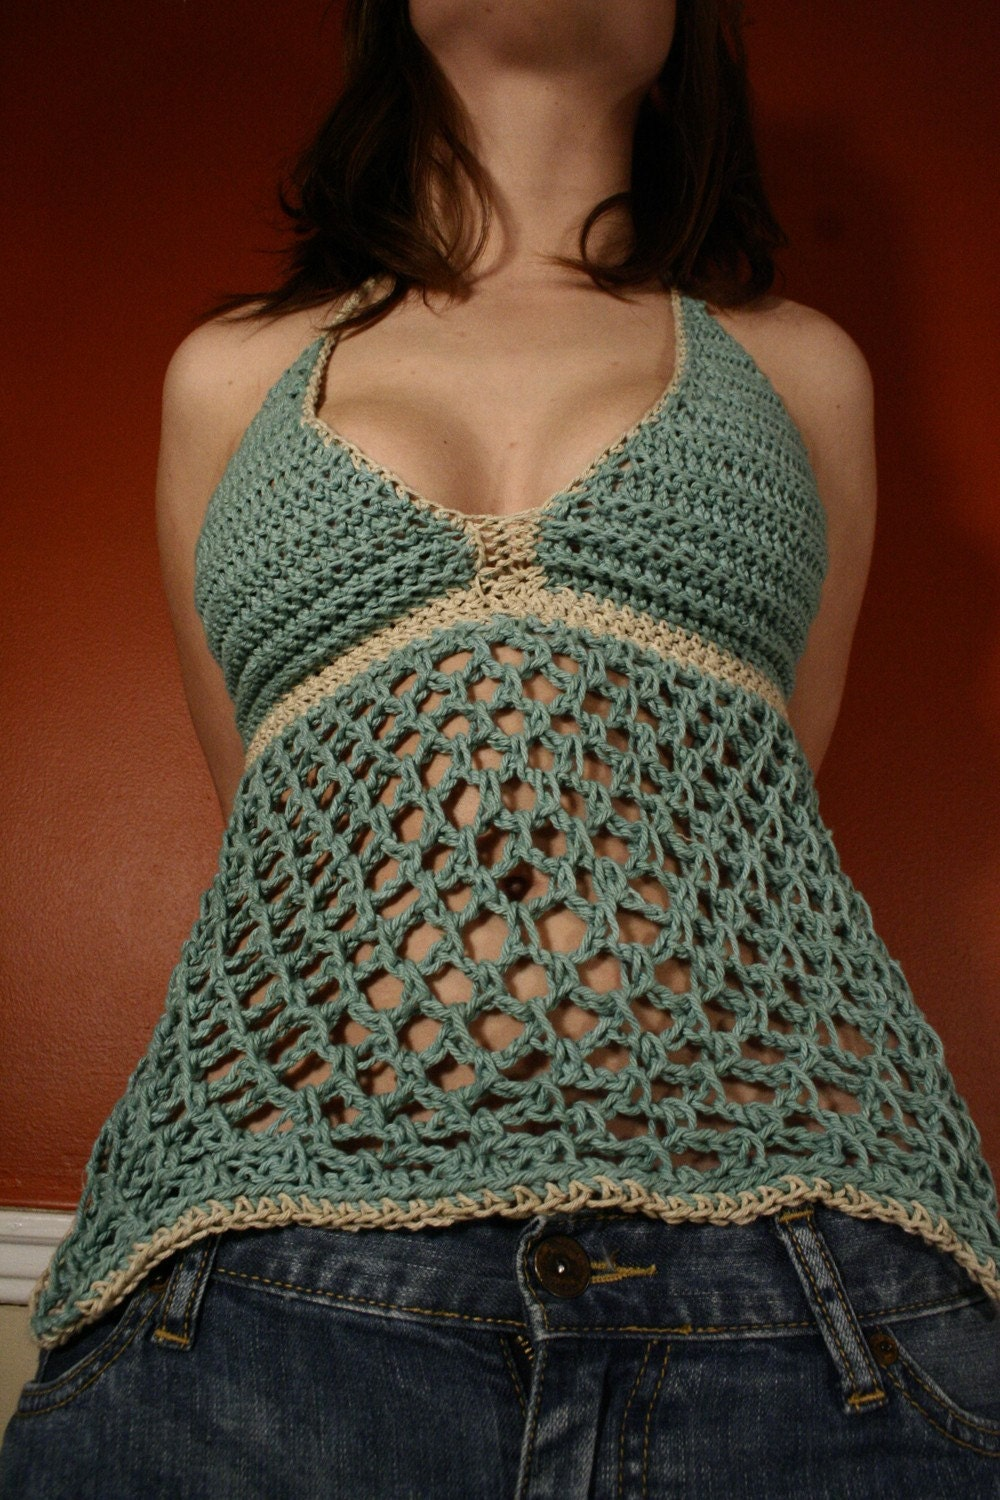 Art of Crochet by Teresa - Crochet Bikini Top - Triangle Shape